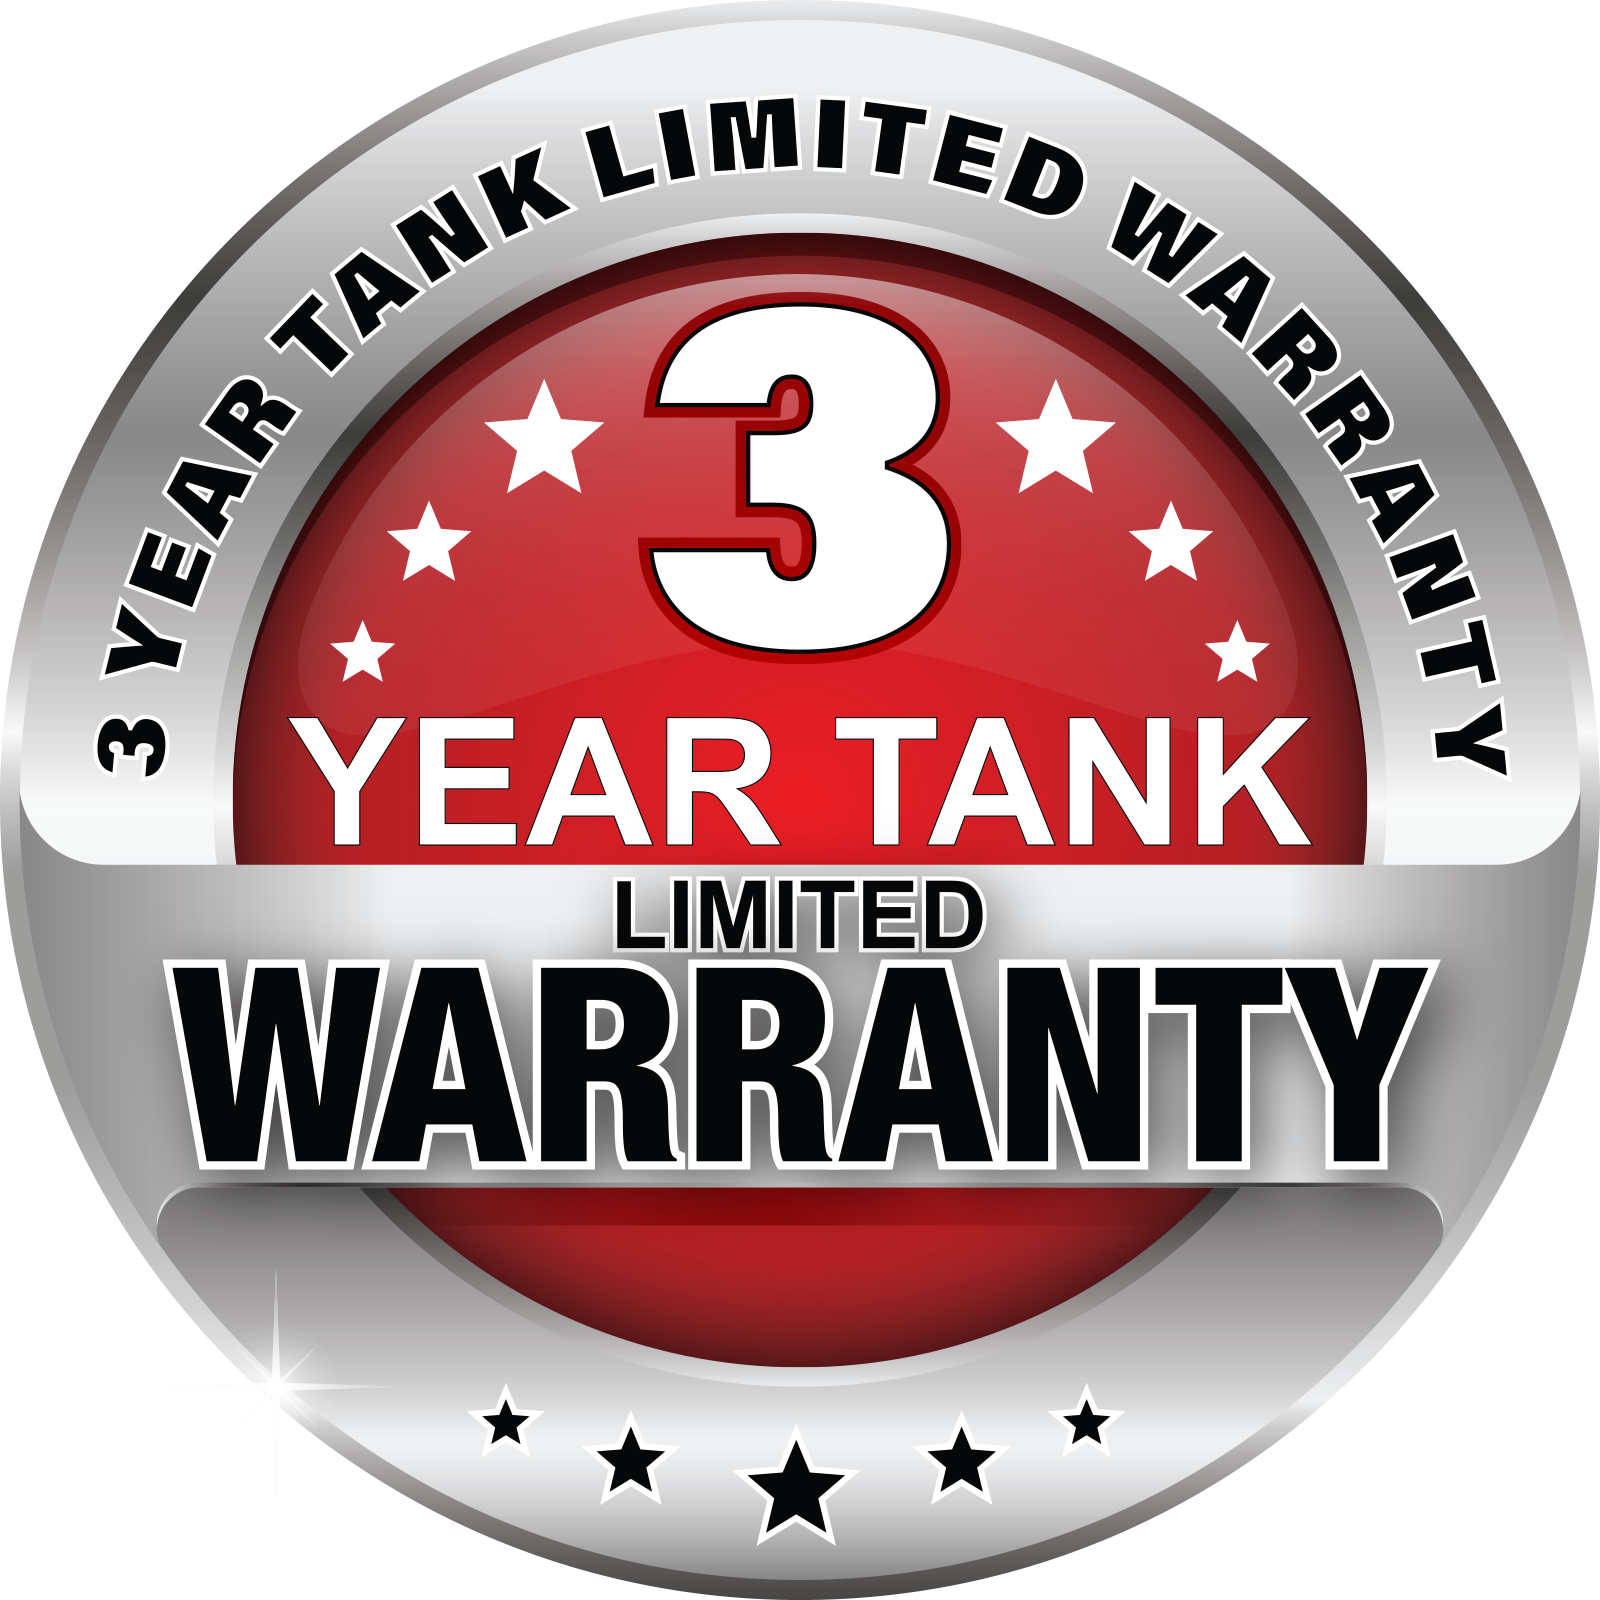 3 YEAR LIMITED WARRANTY BUG